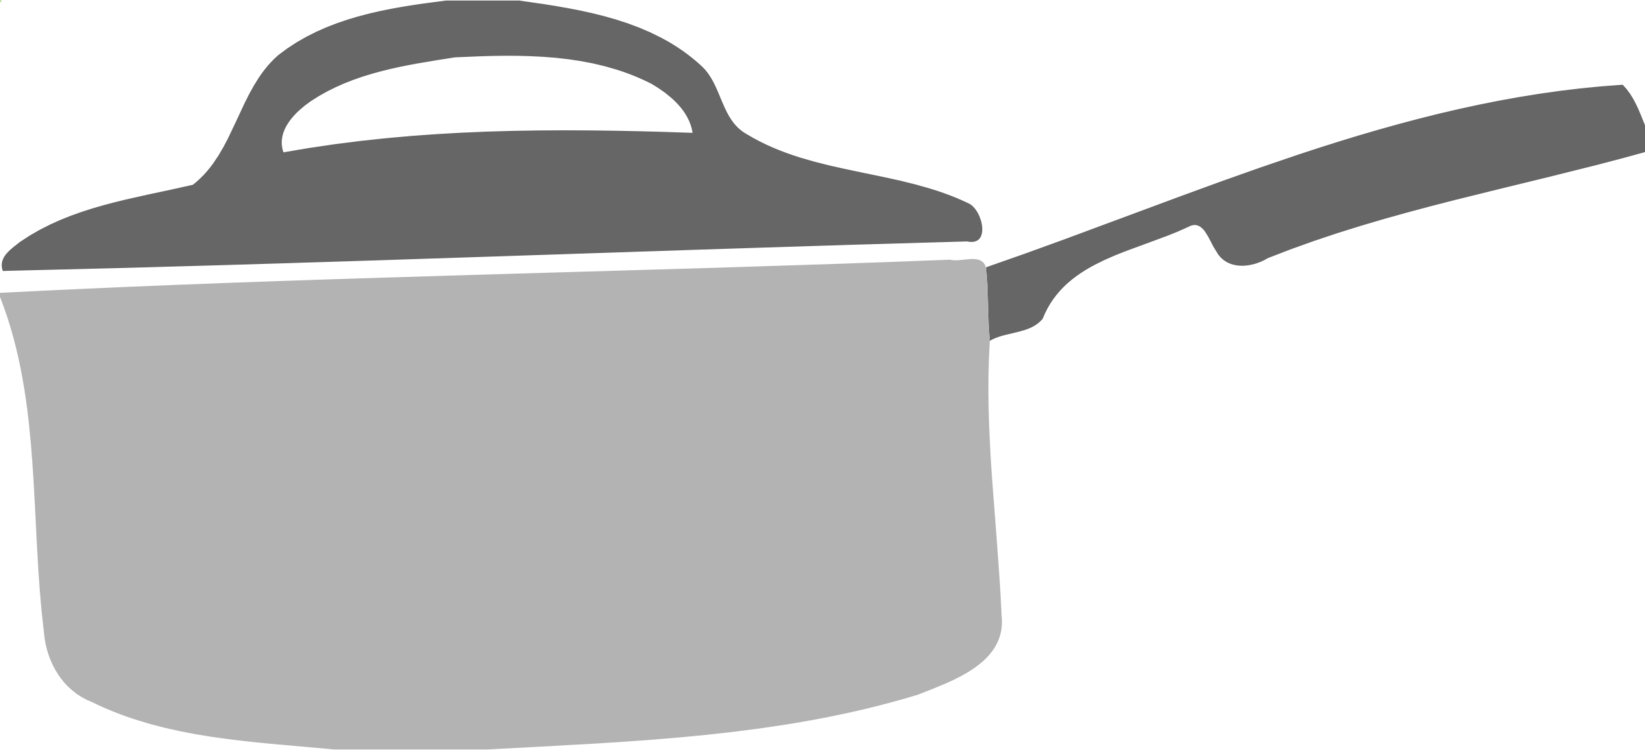 Casserola Cookware Computer Icons Sauce Frying Pan.